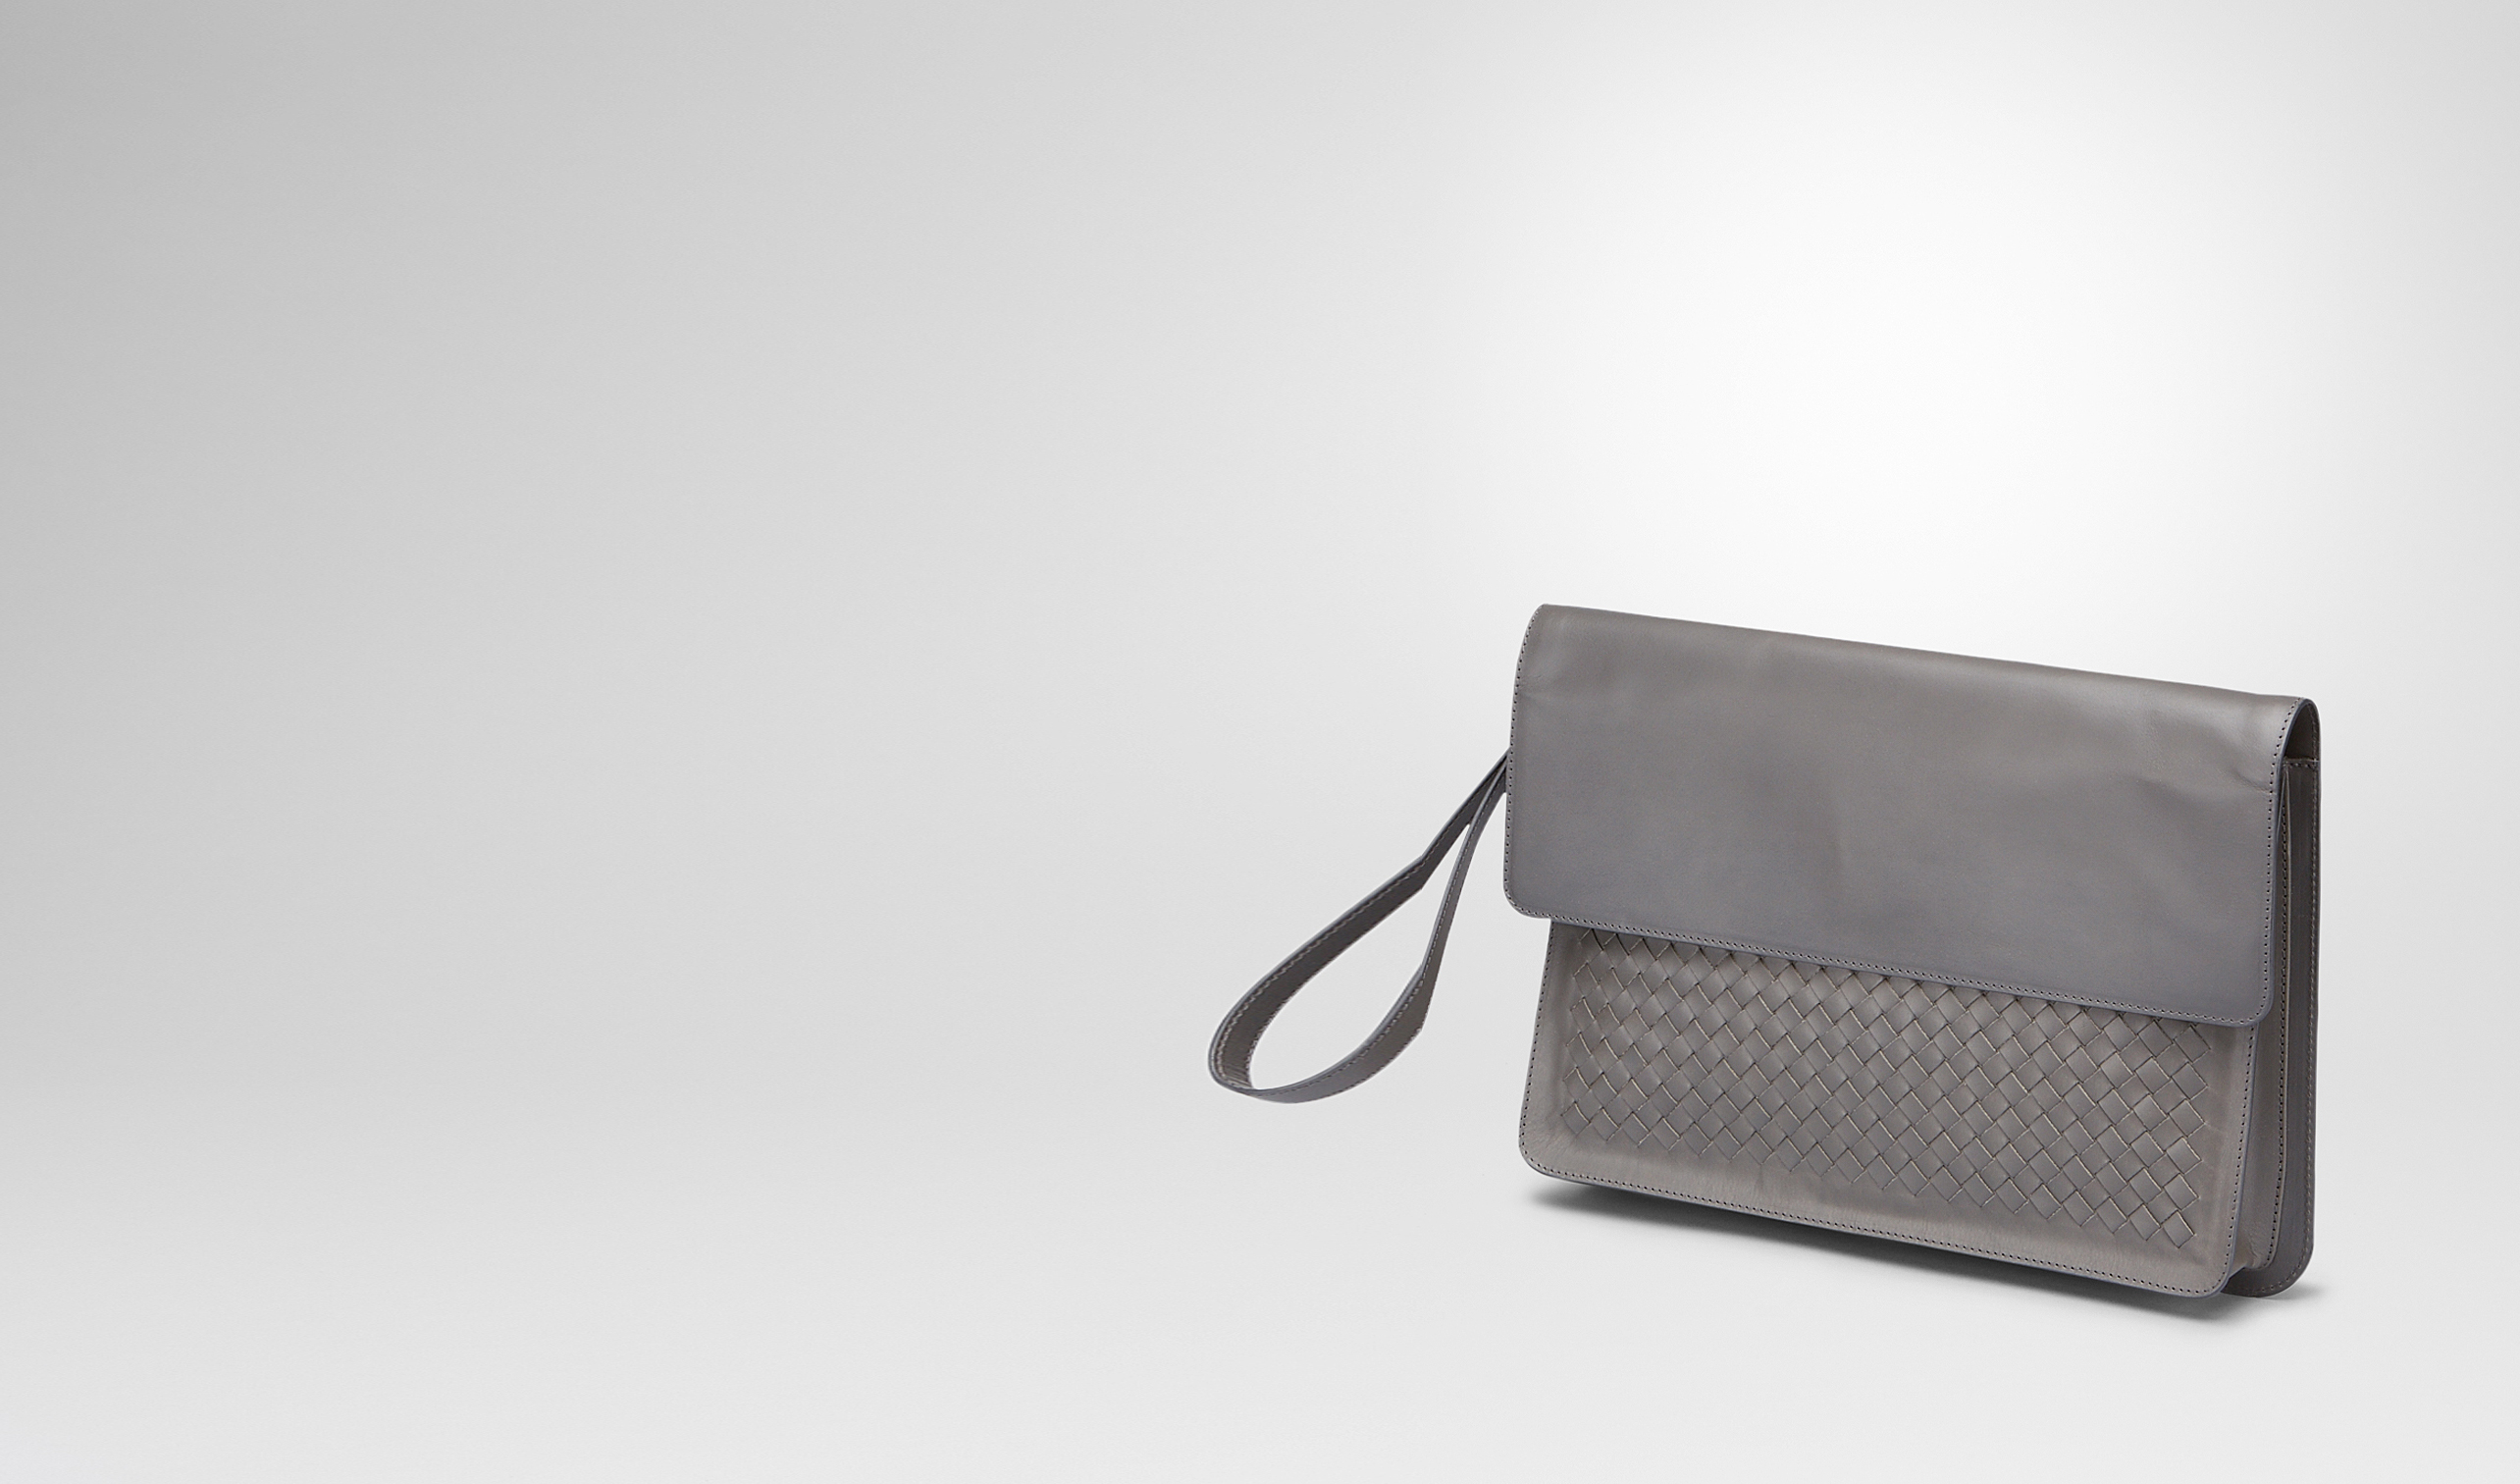 BOTTEGA VENETA Petit sac U PORTE-DOCUMENTS MEDIUM GREY EN CUIR DE VACHETTE INTRECCIATO pl